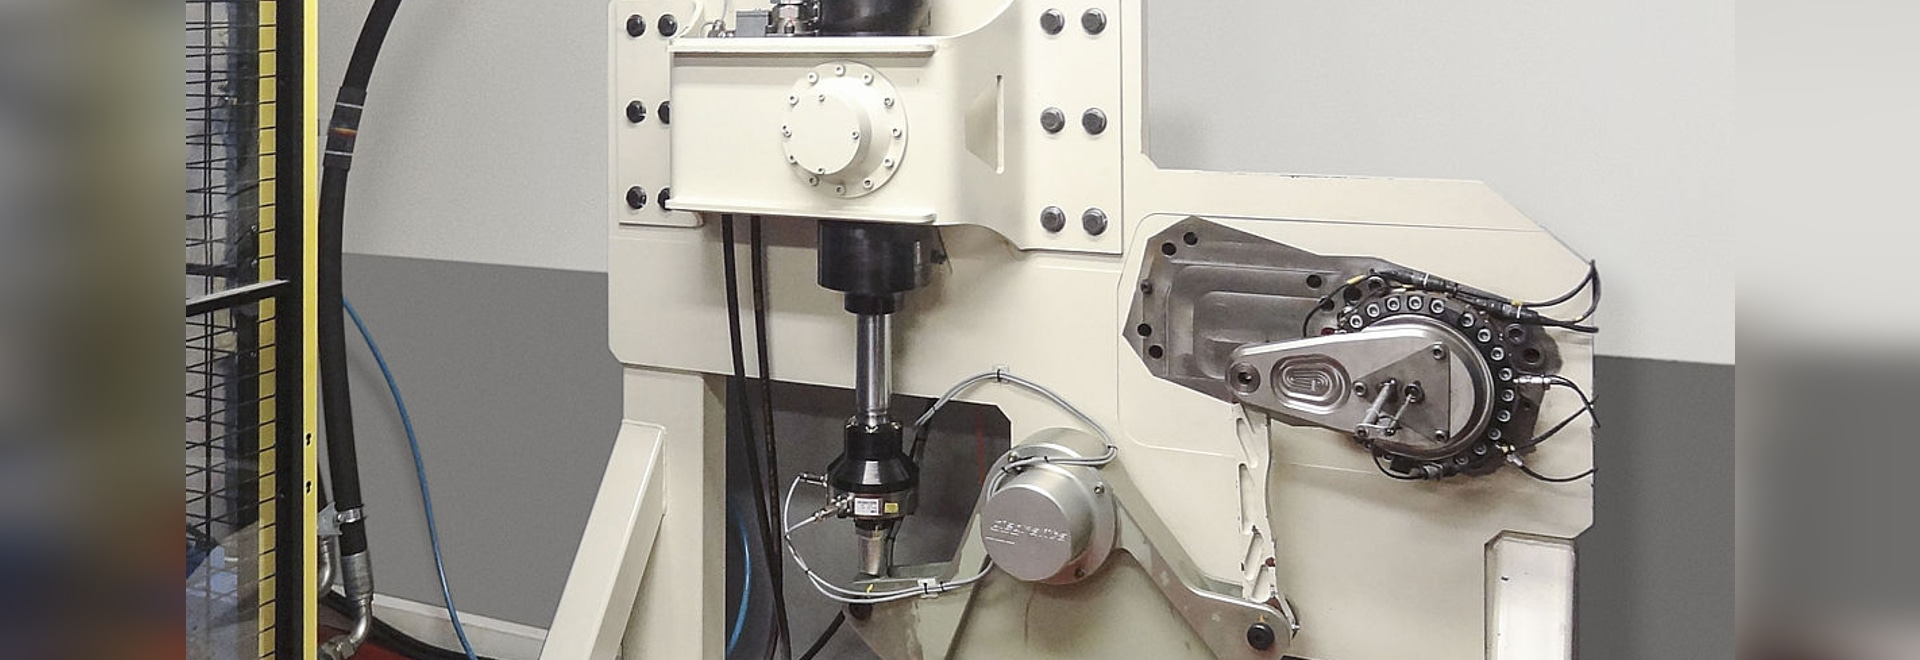 Piedrafita Selects Moog for Fatigue Test System